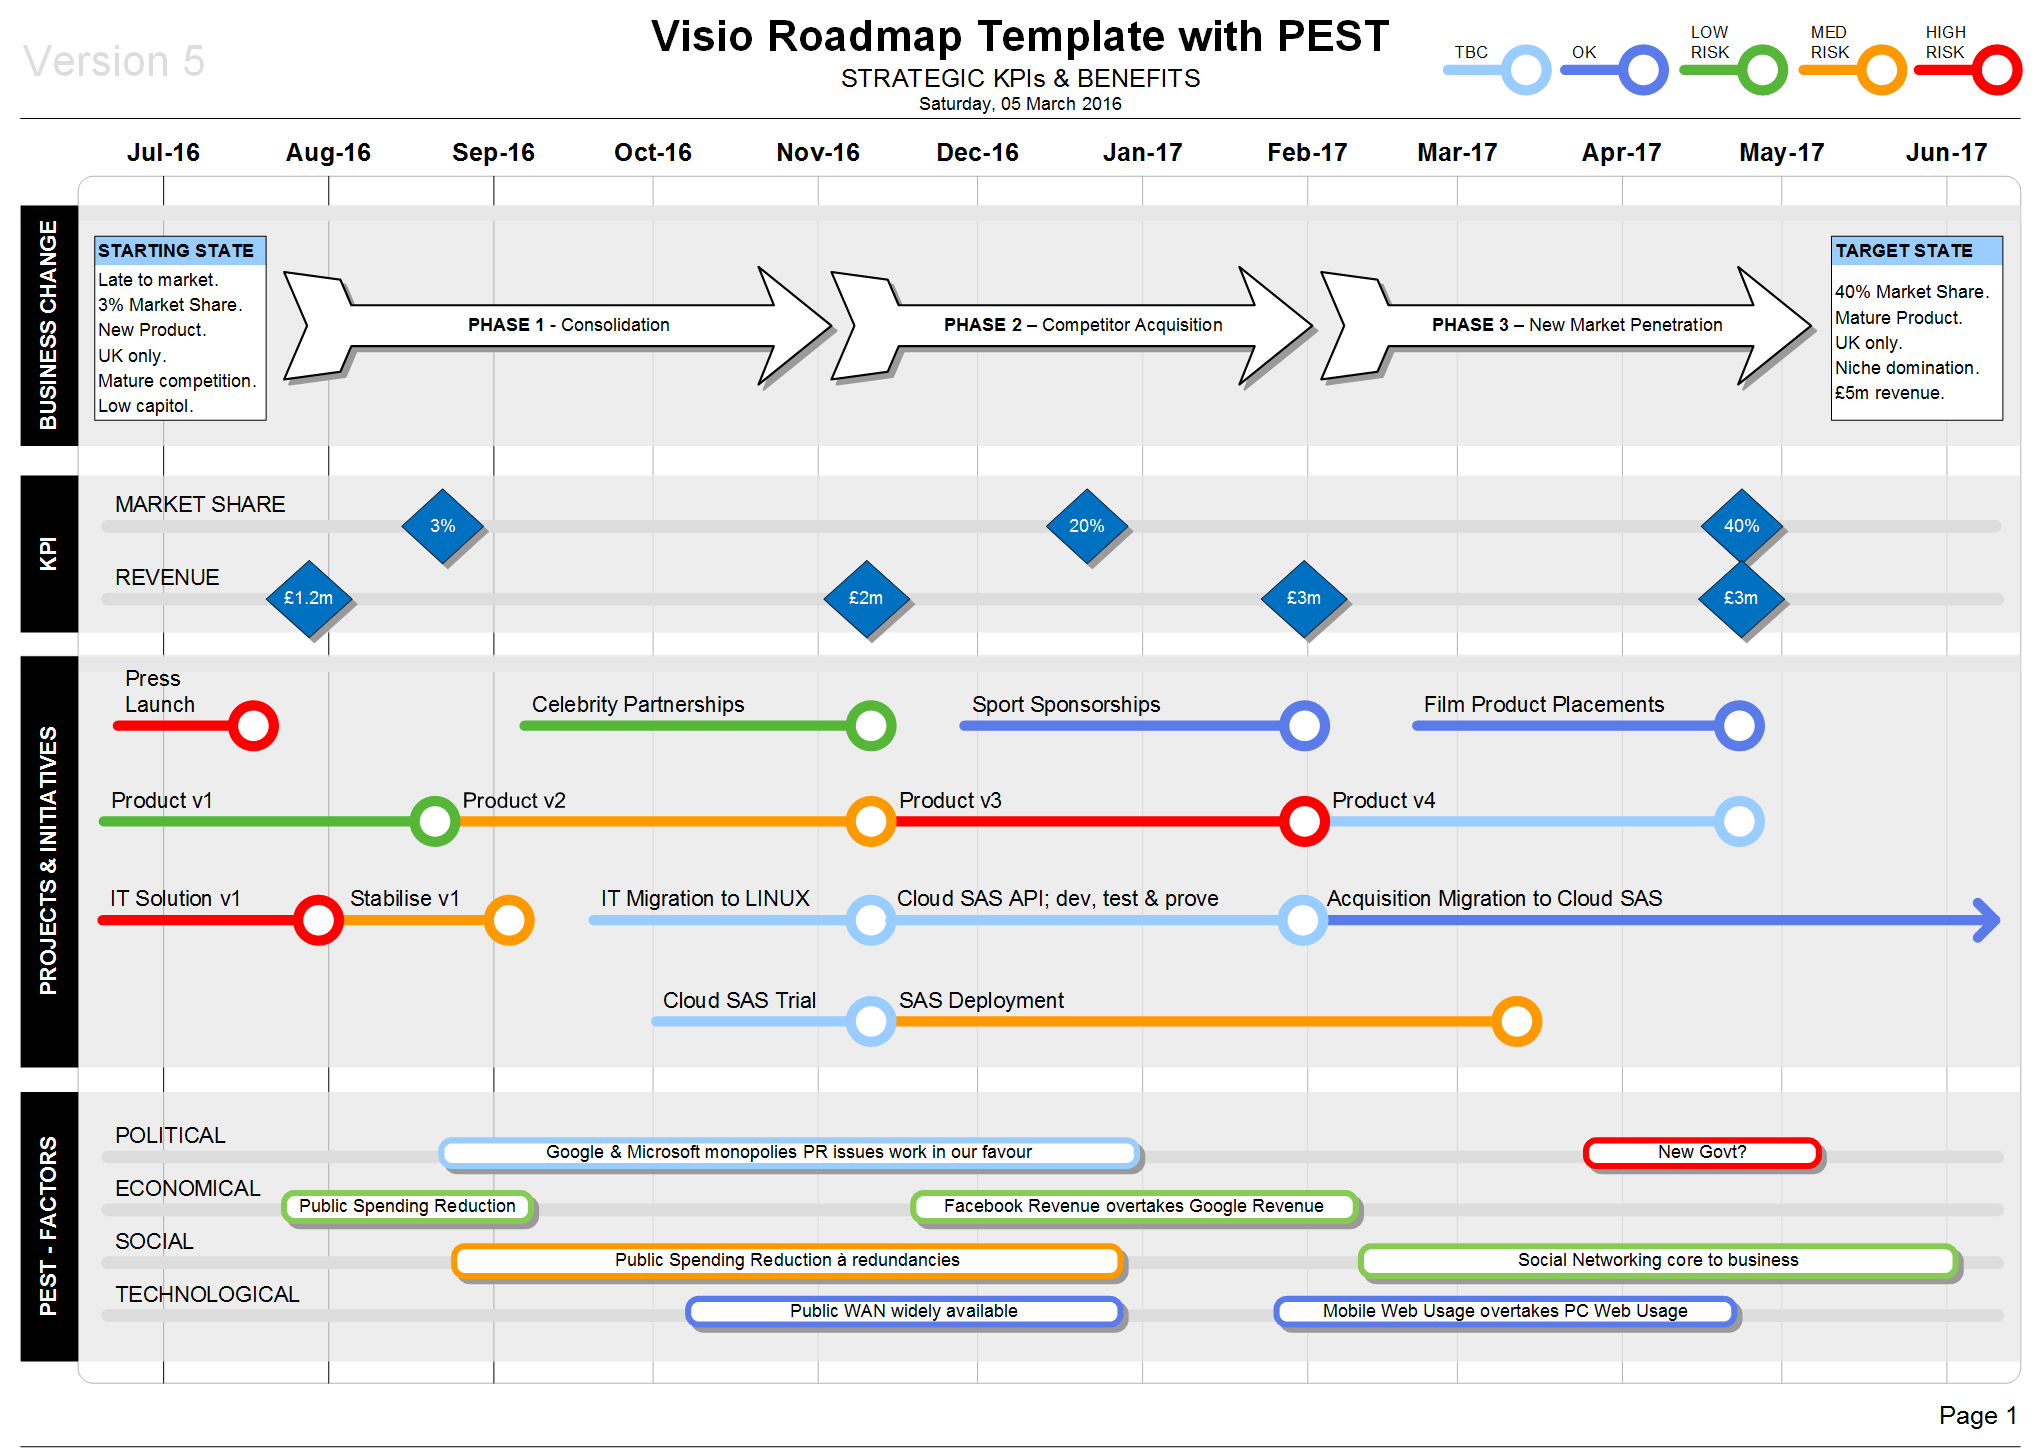 visio roadmap pest template